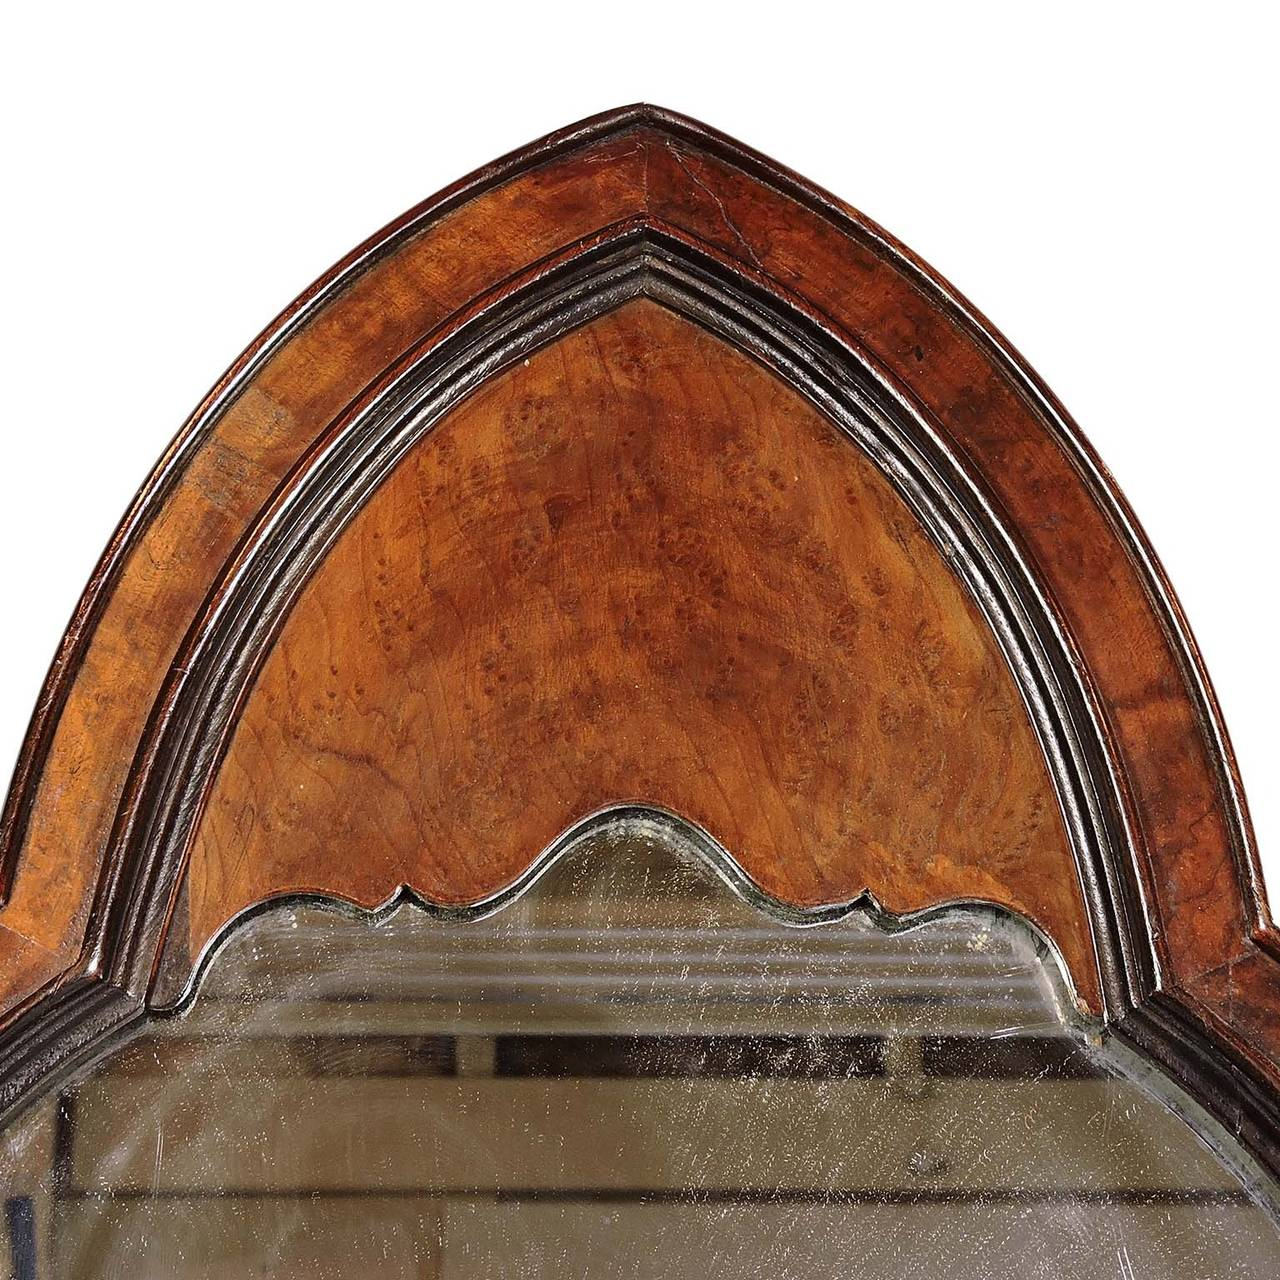 Arched gilt mirror at 1stdibs - Gothic Revival Burl Wood Arched Wall Mirror 2